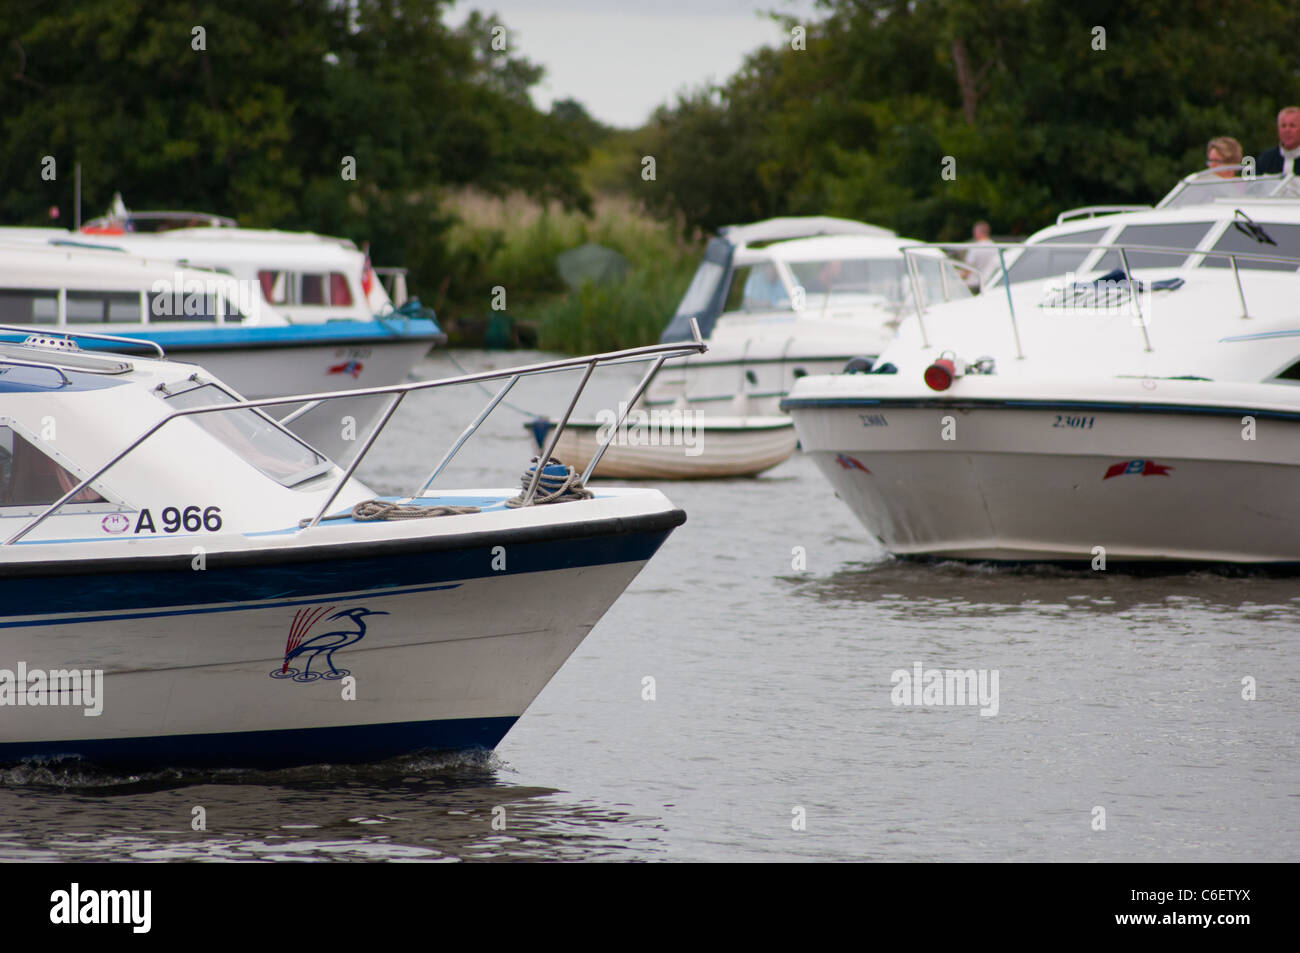 Busy river scene Hire boats cruisers on Norfolk Broads - Stock Image